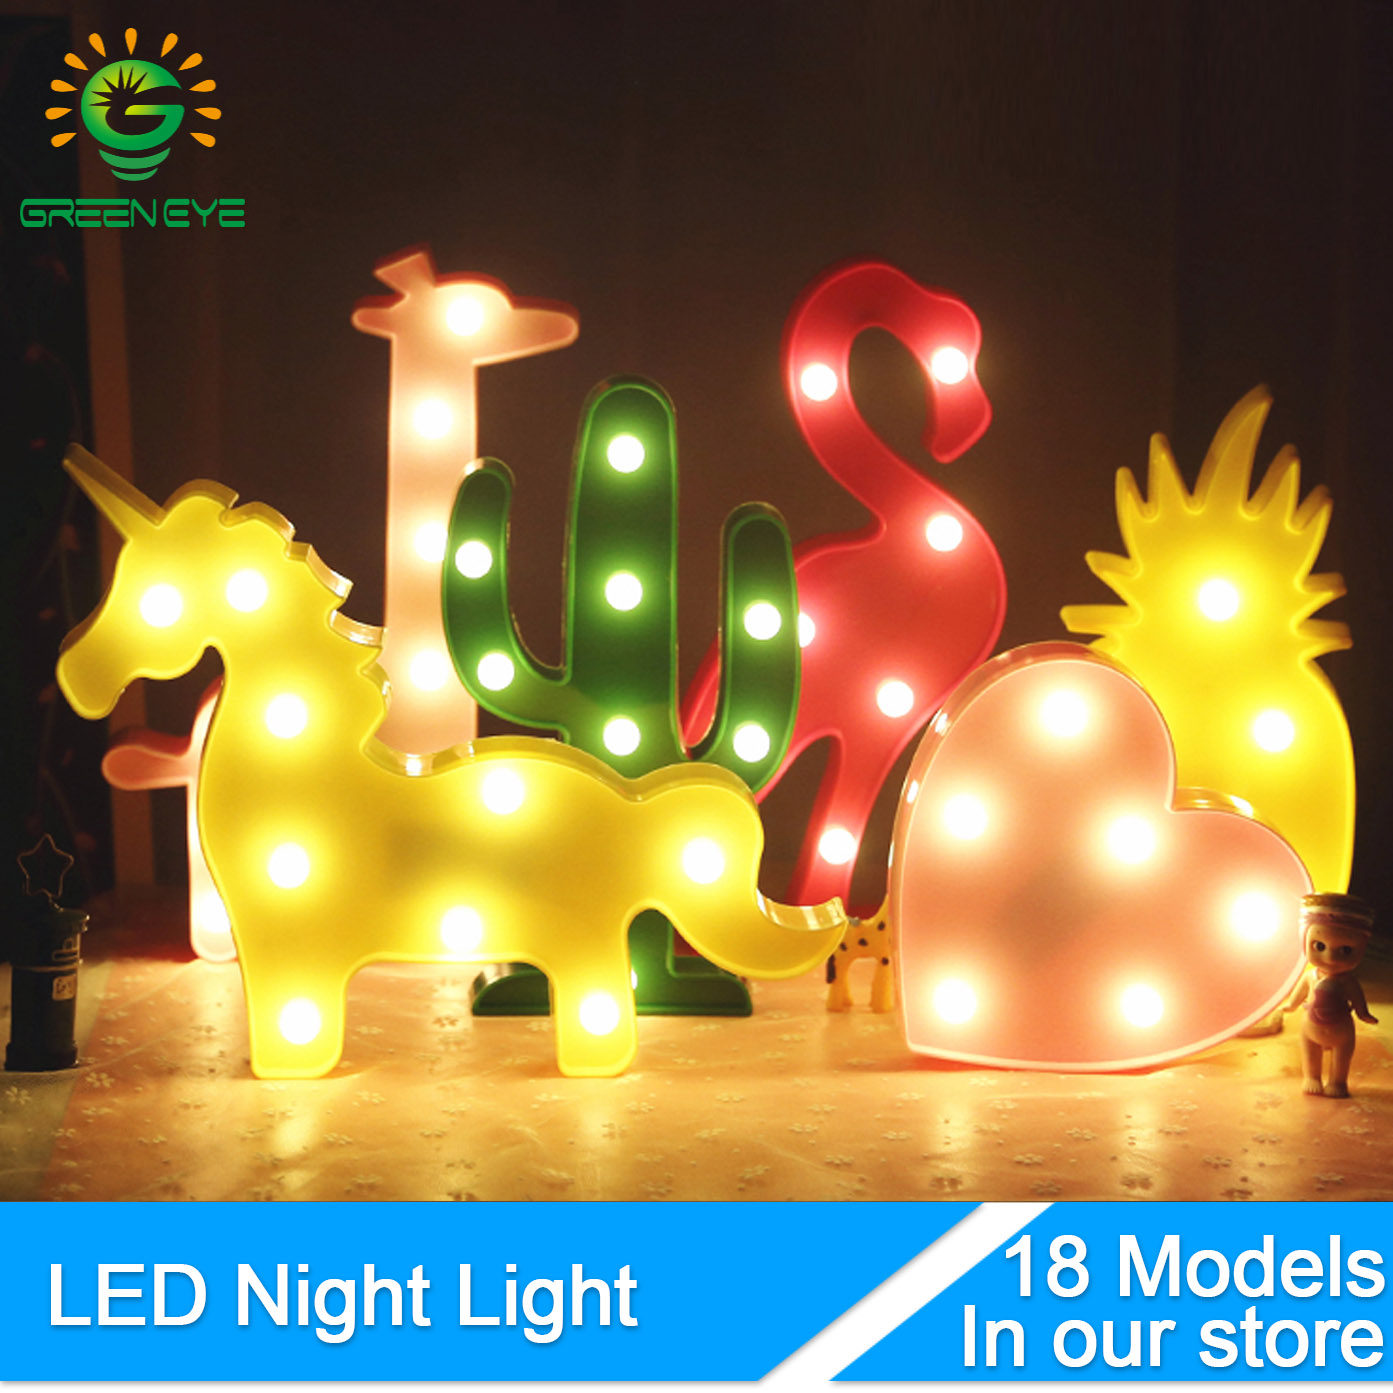 GreenEye LED Nightlight 3D Bulb Desk Table Wall Lamp Night Light Bulb For Baby Children Toy Party Bar Luminaria Ampoule Lampara стоимость